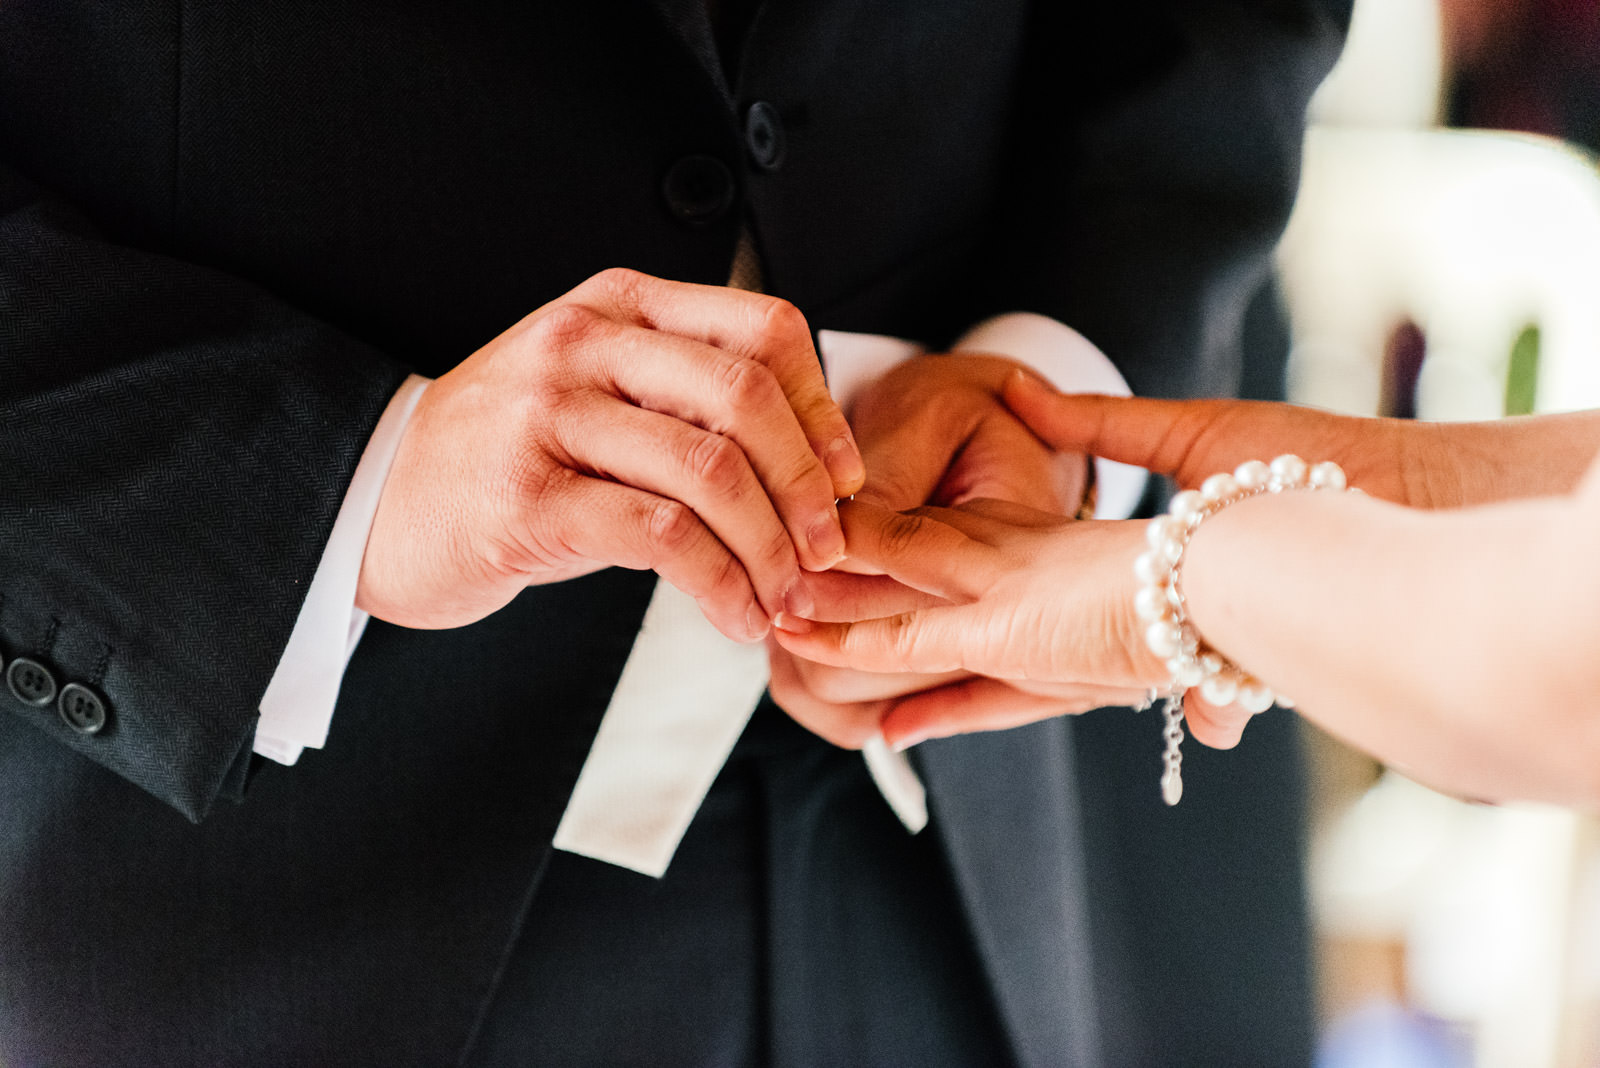 exchanging rings during marriage ceremony